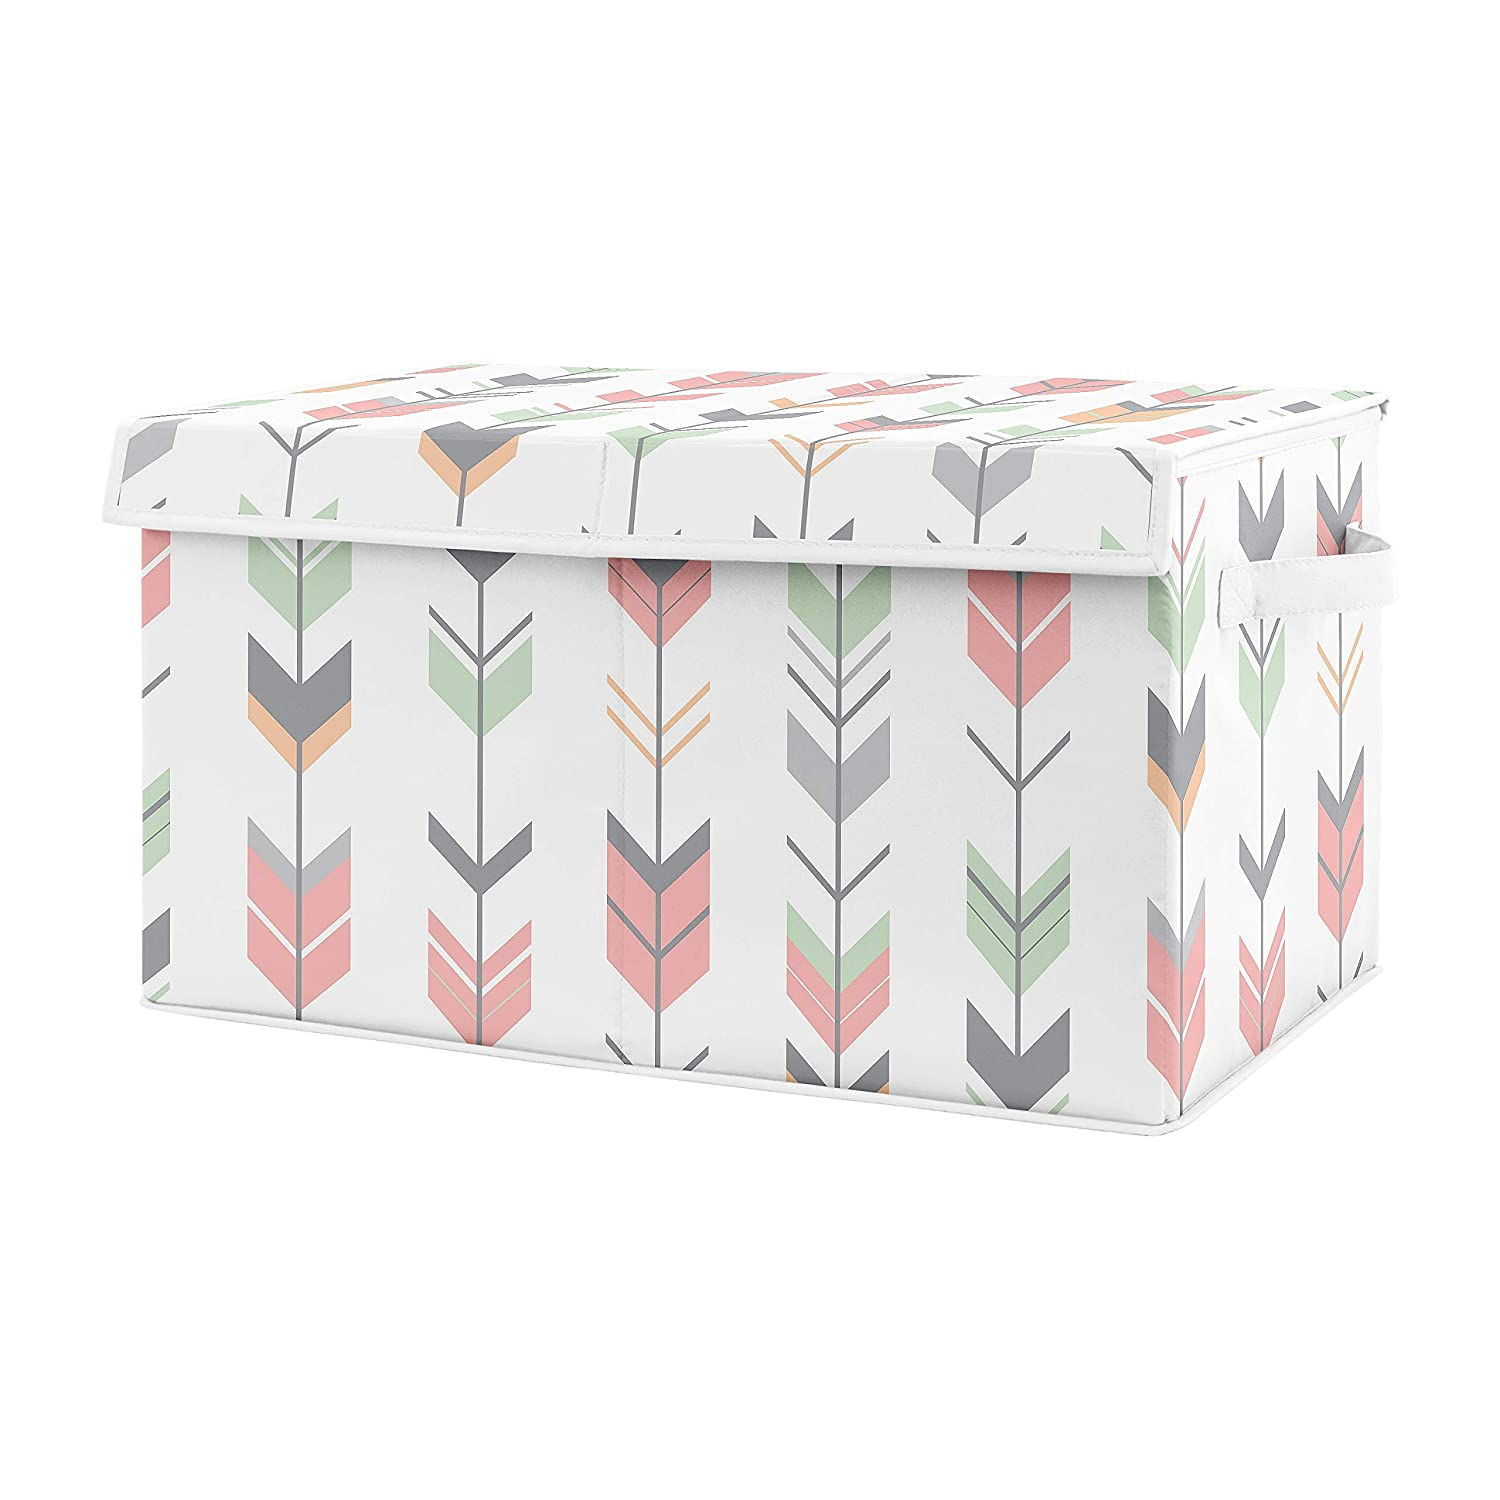 Sweet Jojo Designs Woodland Arrow Girl Small Fabric Toy Bin Storage Box Chest for Baby Nursery or Kids Room - Grey, Coral Pink and Mint Green Mod Modern